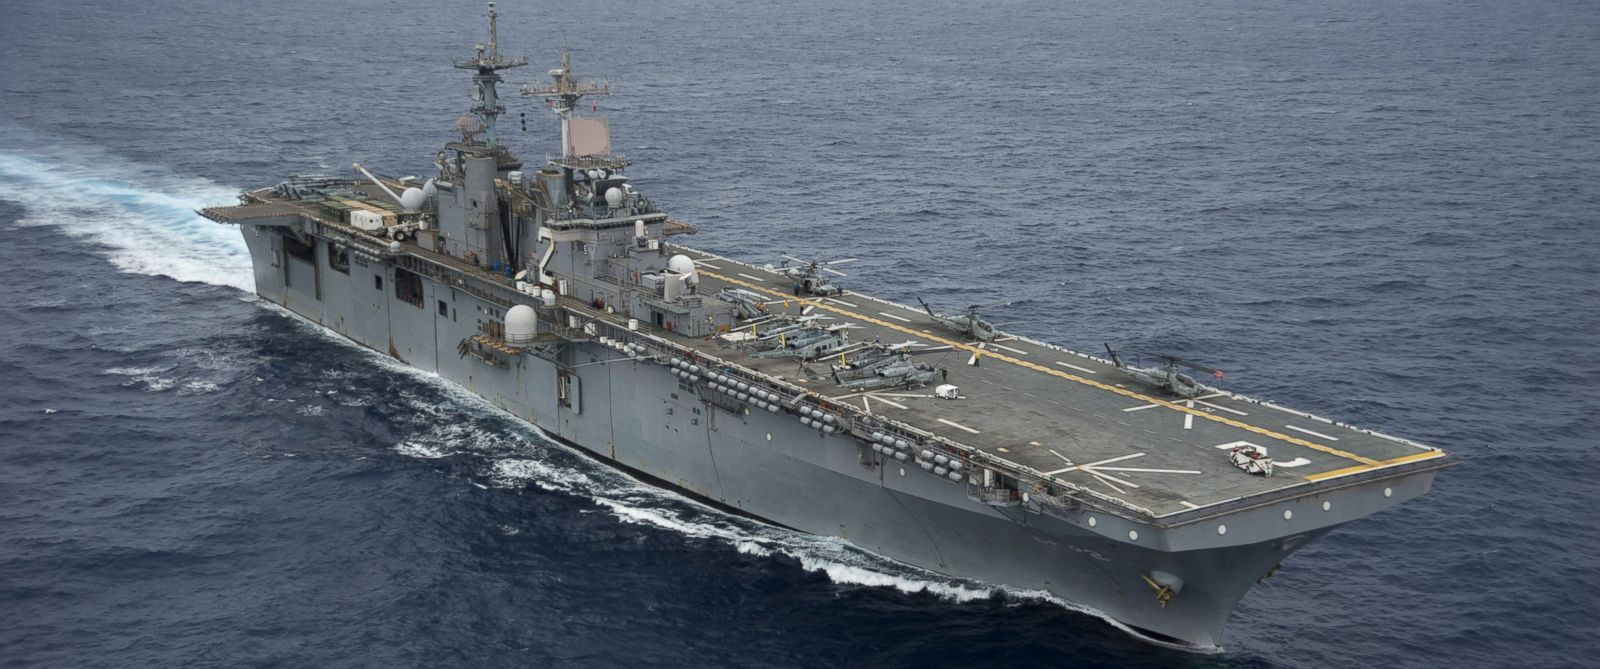 PHOTO: The amphibious assault ship USS Essex LHD 2 transits through the Pacific Ocean, 2012.